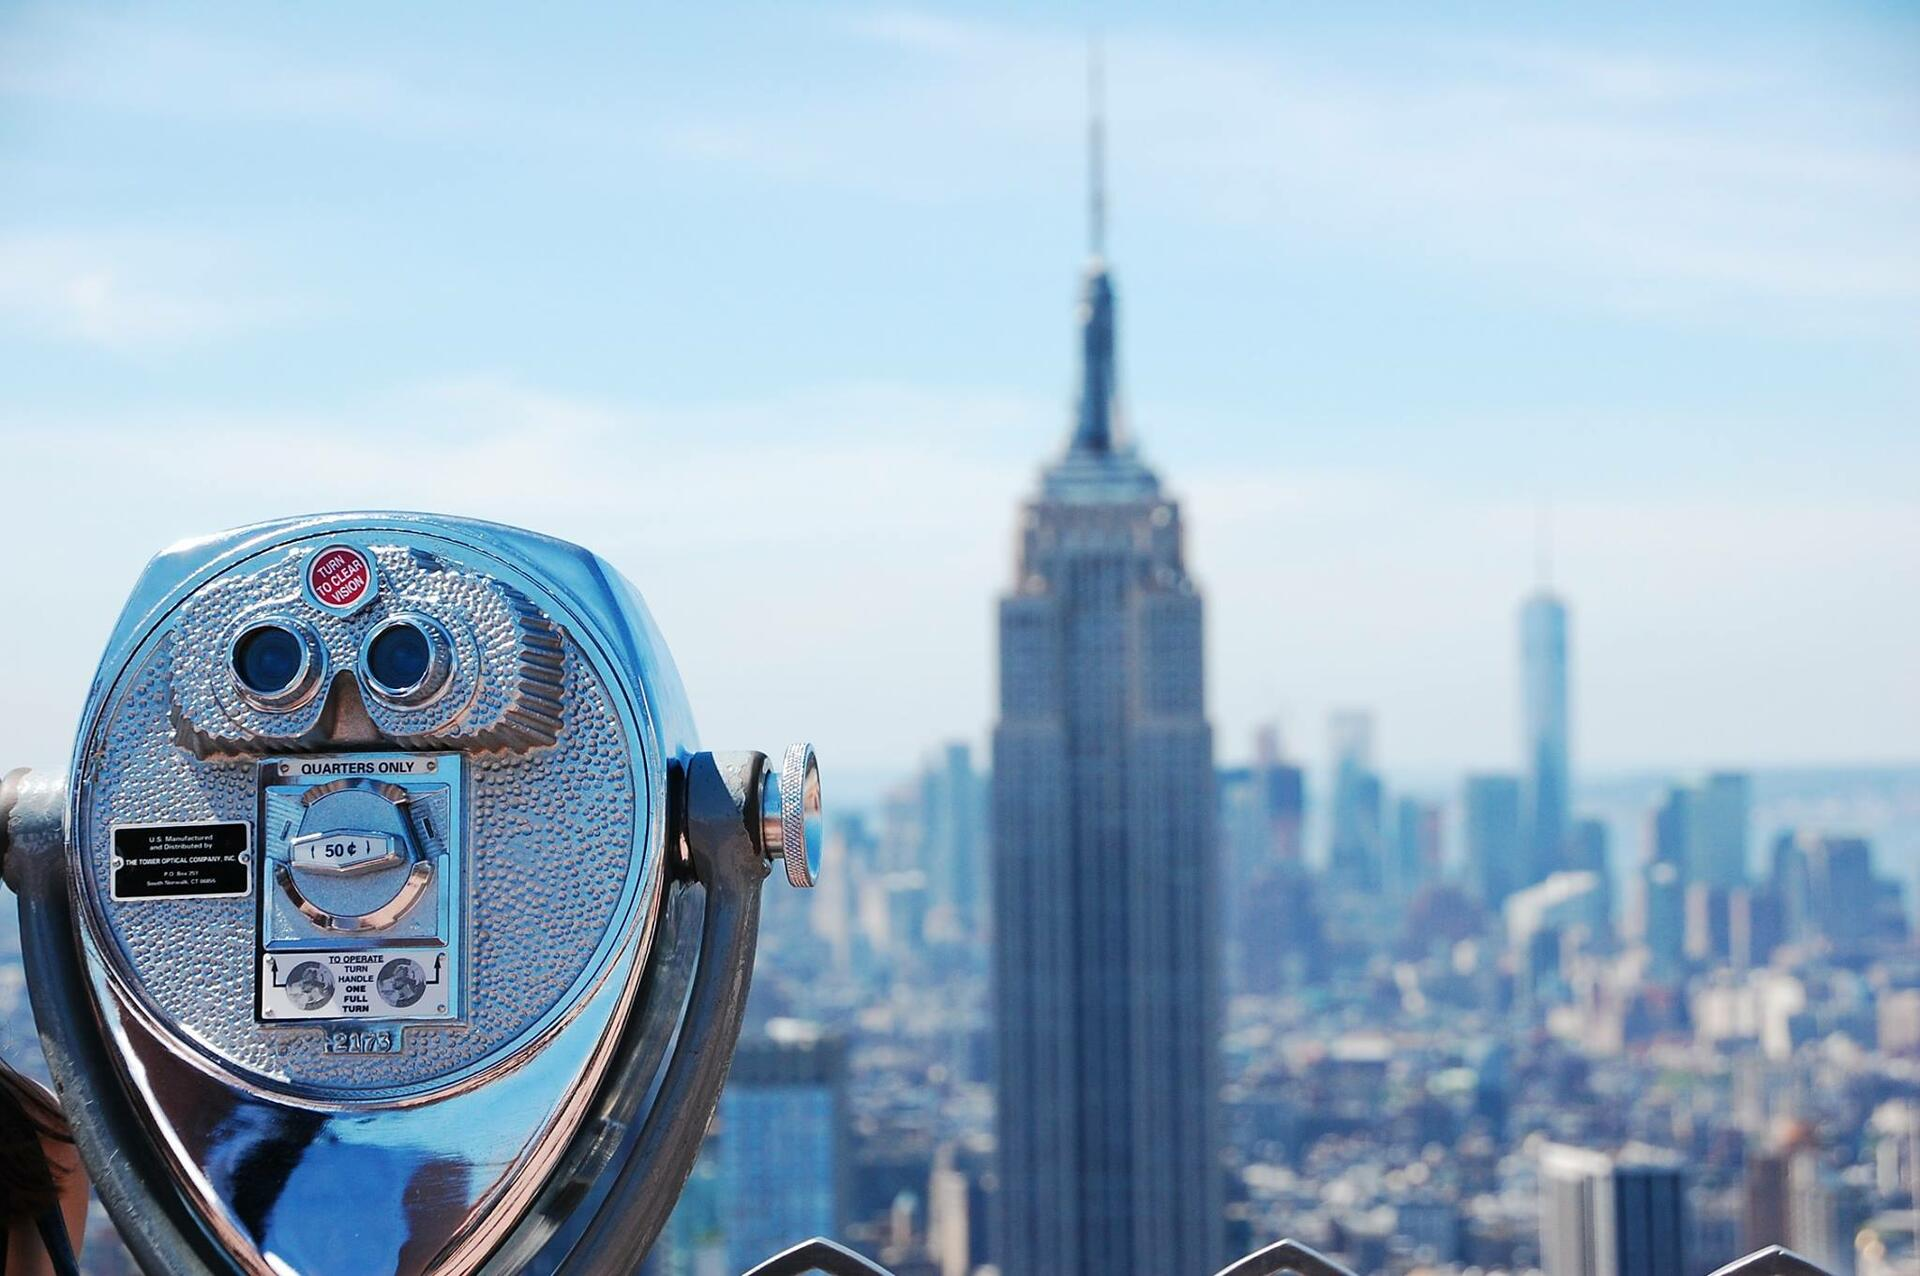 Top Of The Rock Discount Tickets Tips For Visiting A Must See Attraction Leisure Pass Group